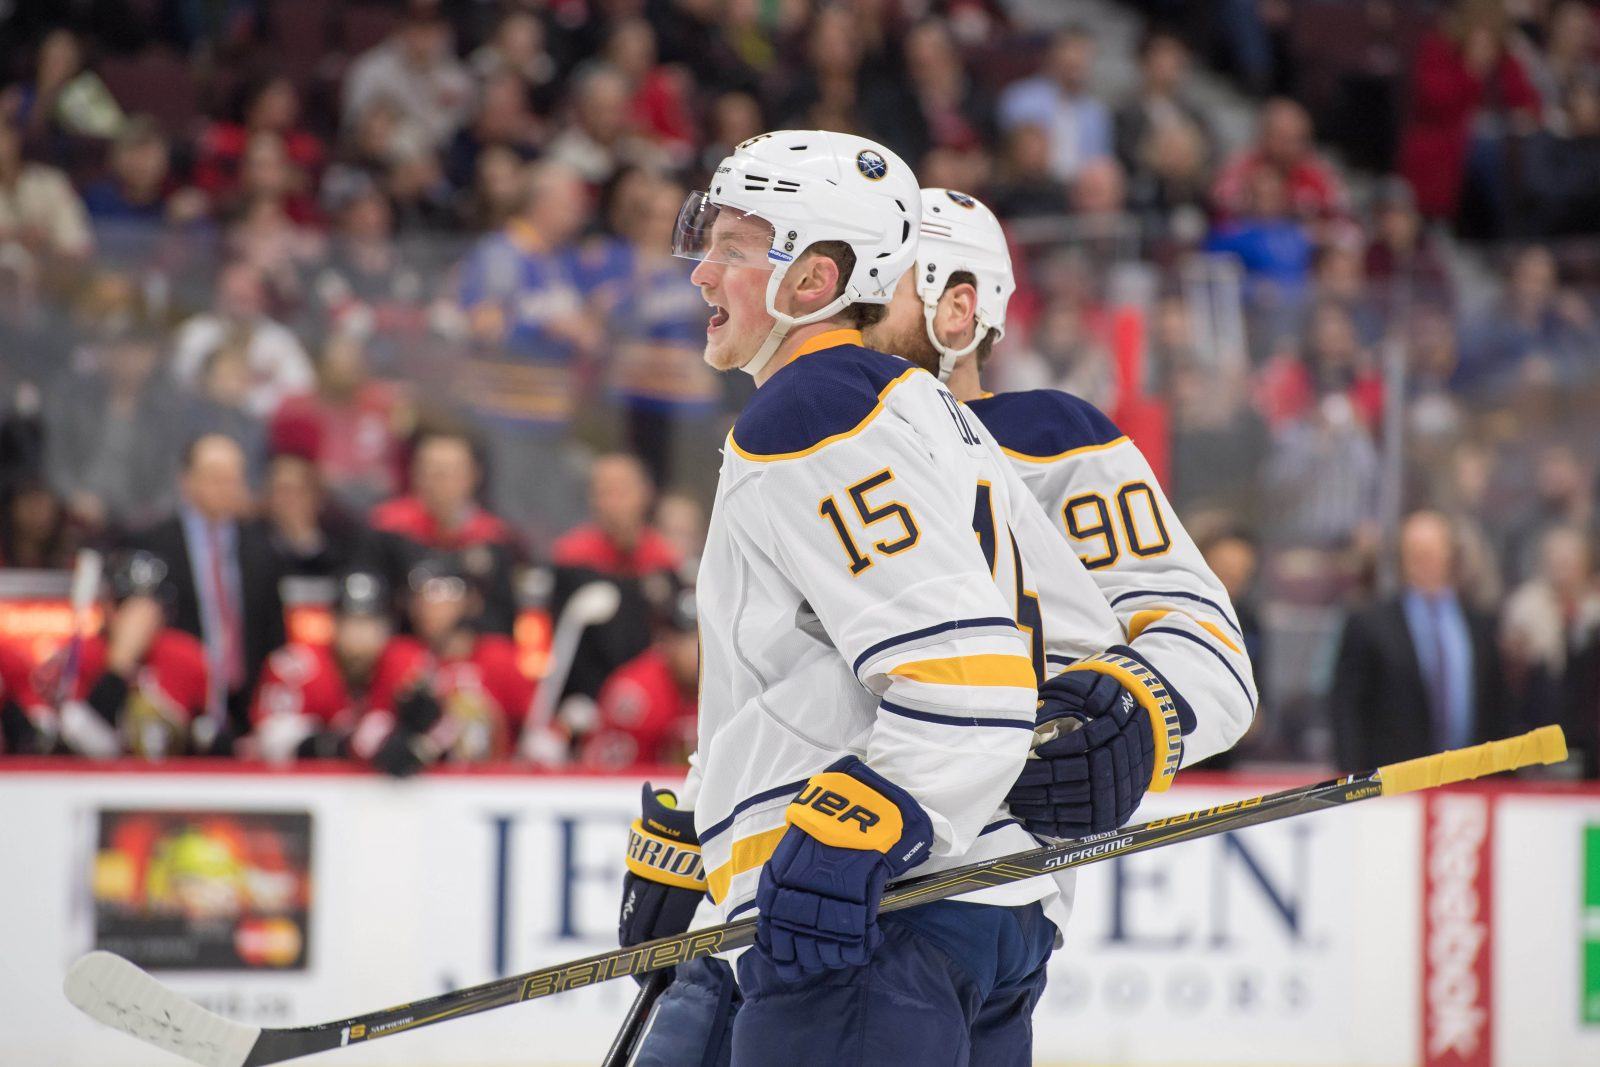 Jack Eichel will make his home debut on Thursday. (Marc DesRosiers/USA TODAY Sports)